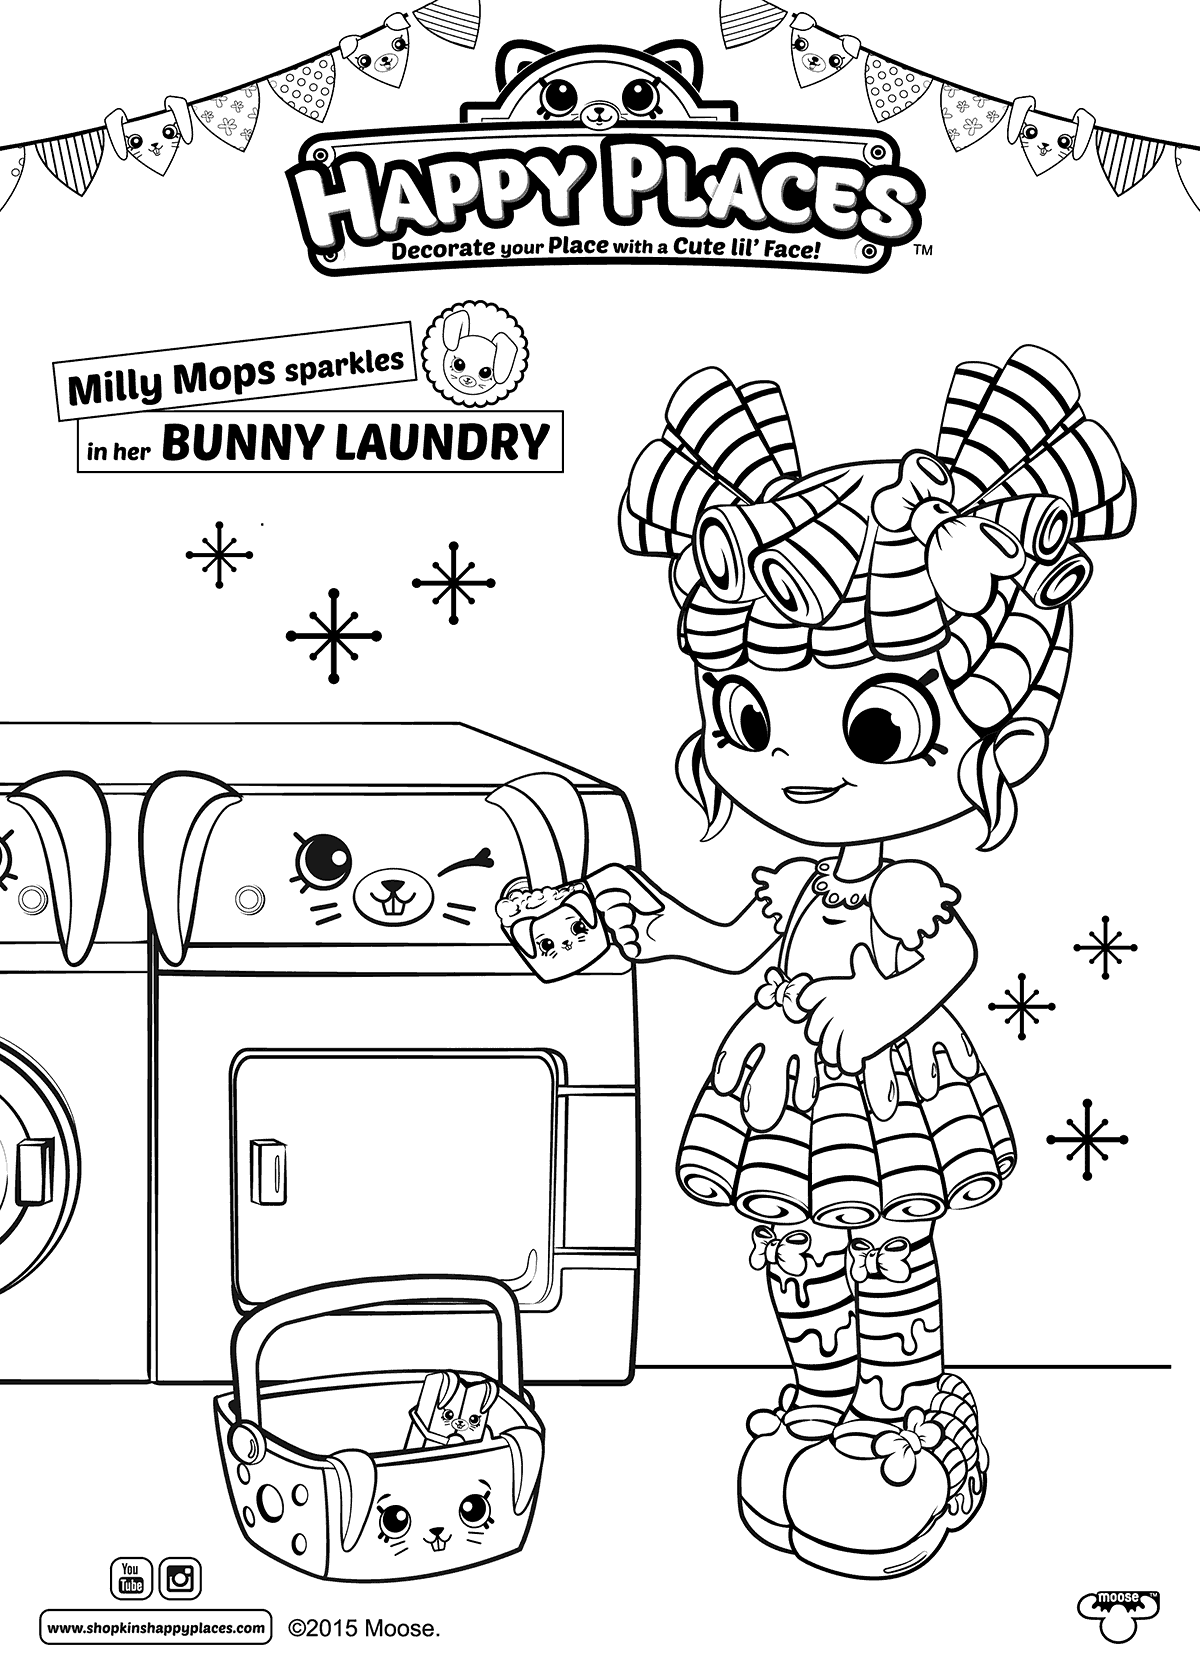 Shoppies Coloring Pages Disney Princess Coloring Pages